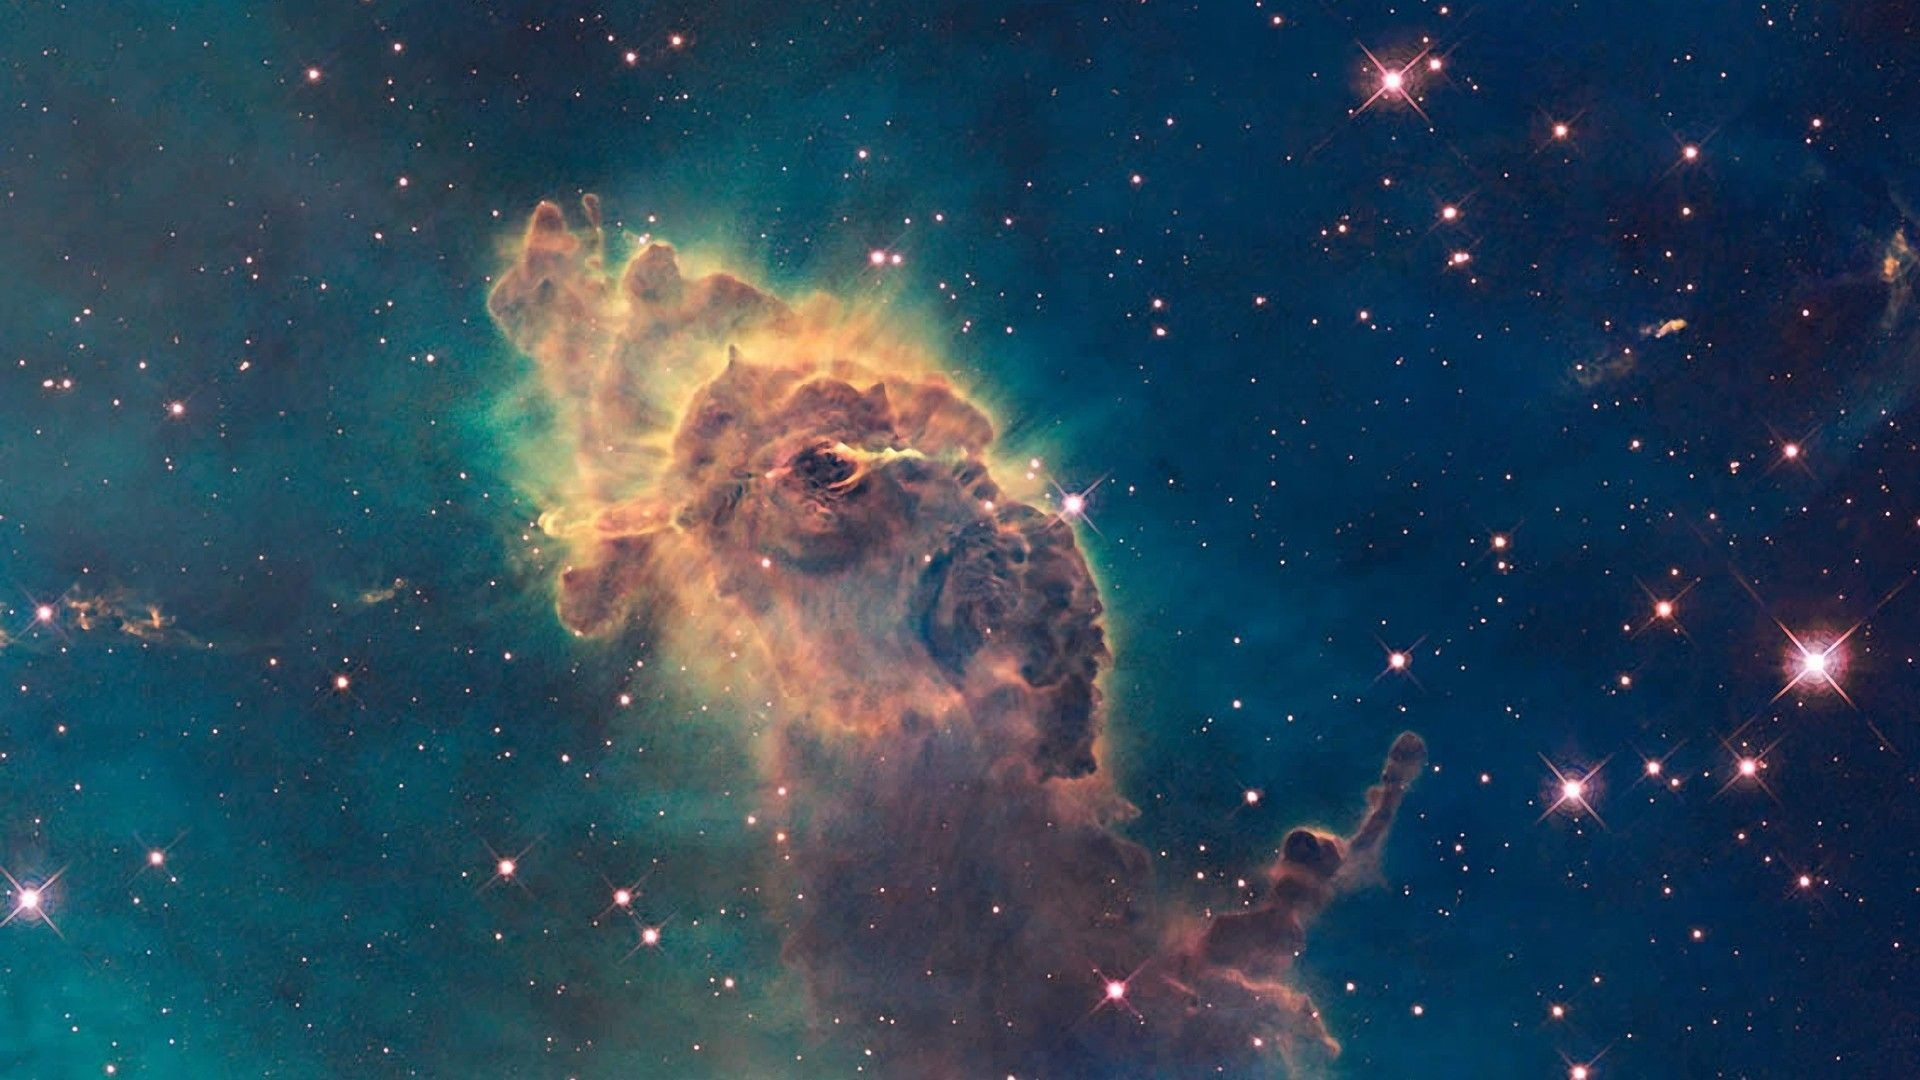 Hubble Space Wallpapers with High Definition Wallpaper Resolution  px 224.52 KB Nature Space High Resolution